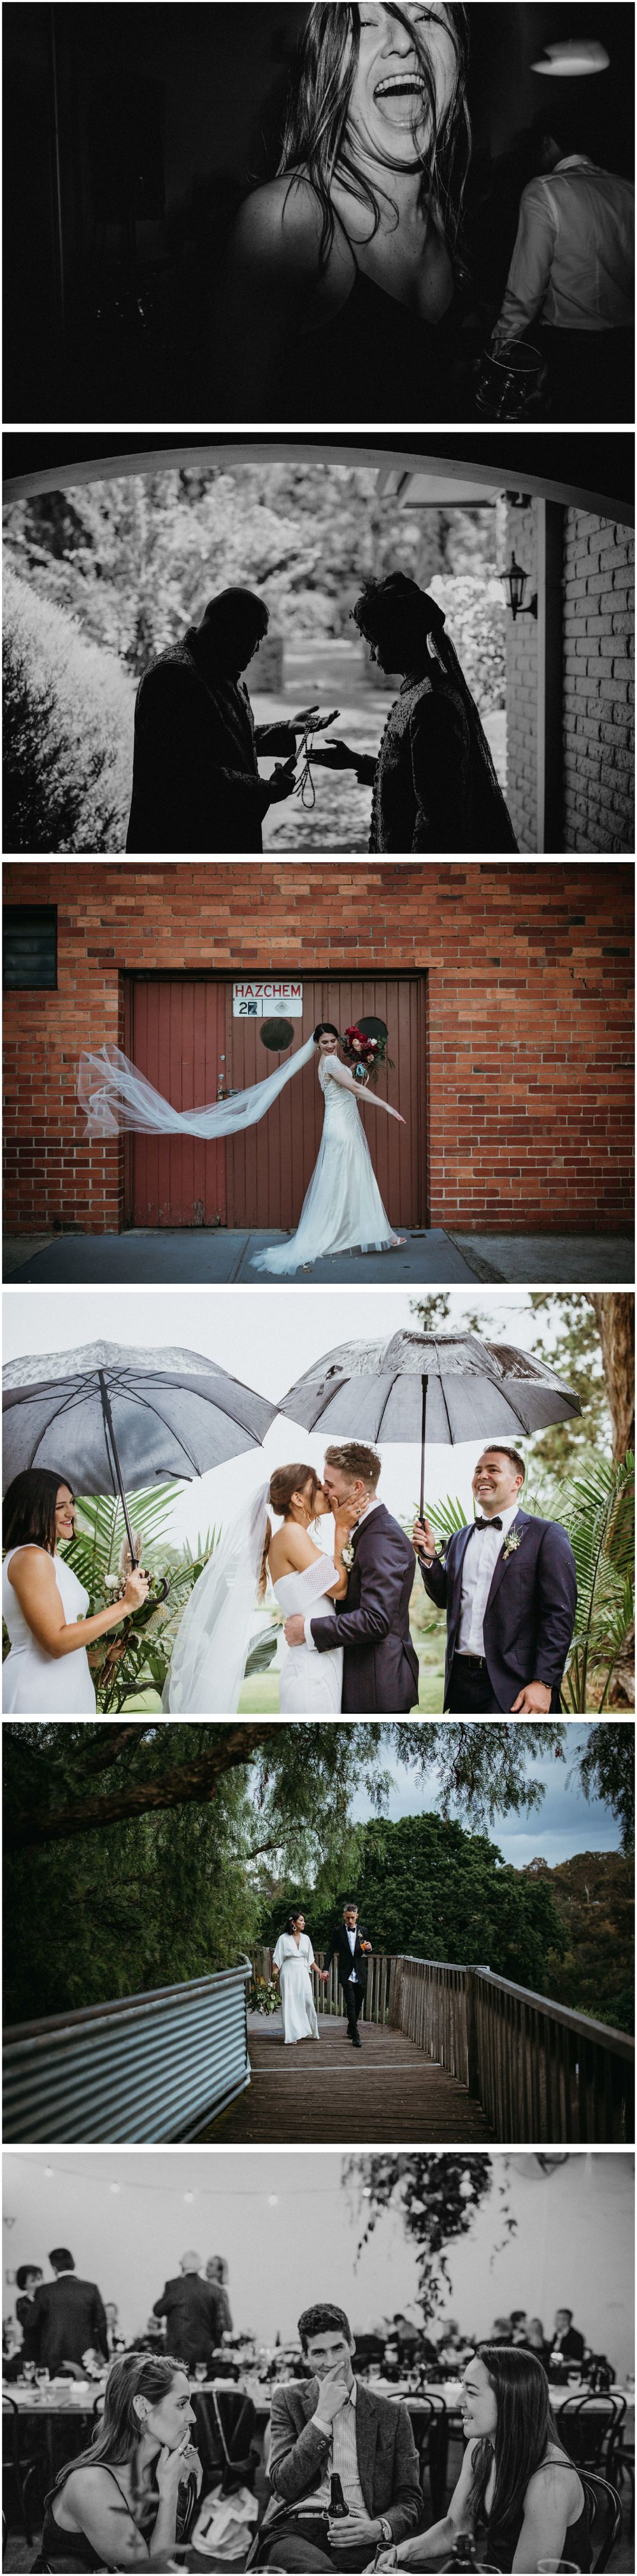 Melbourne Wedding Photographer - 2018 in review -185A3789.jpg